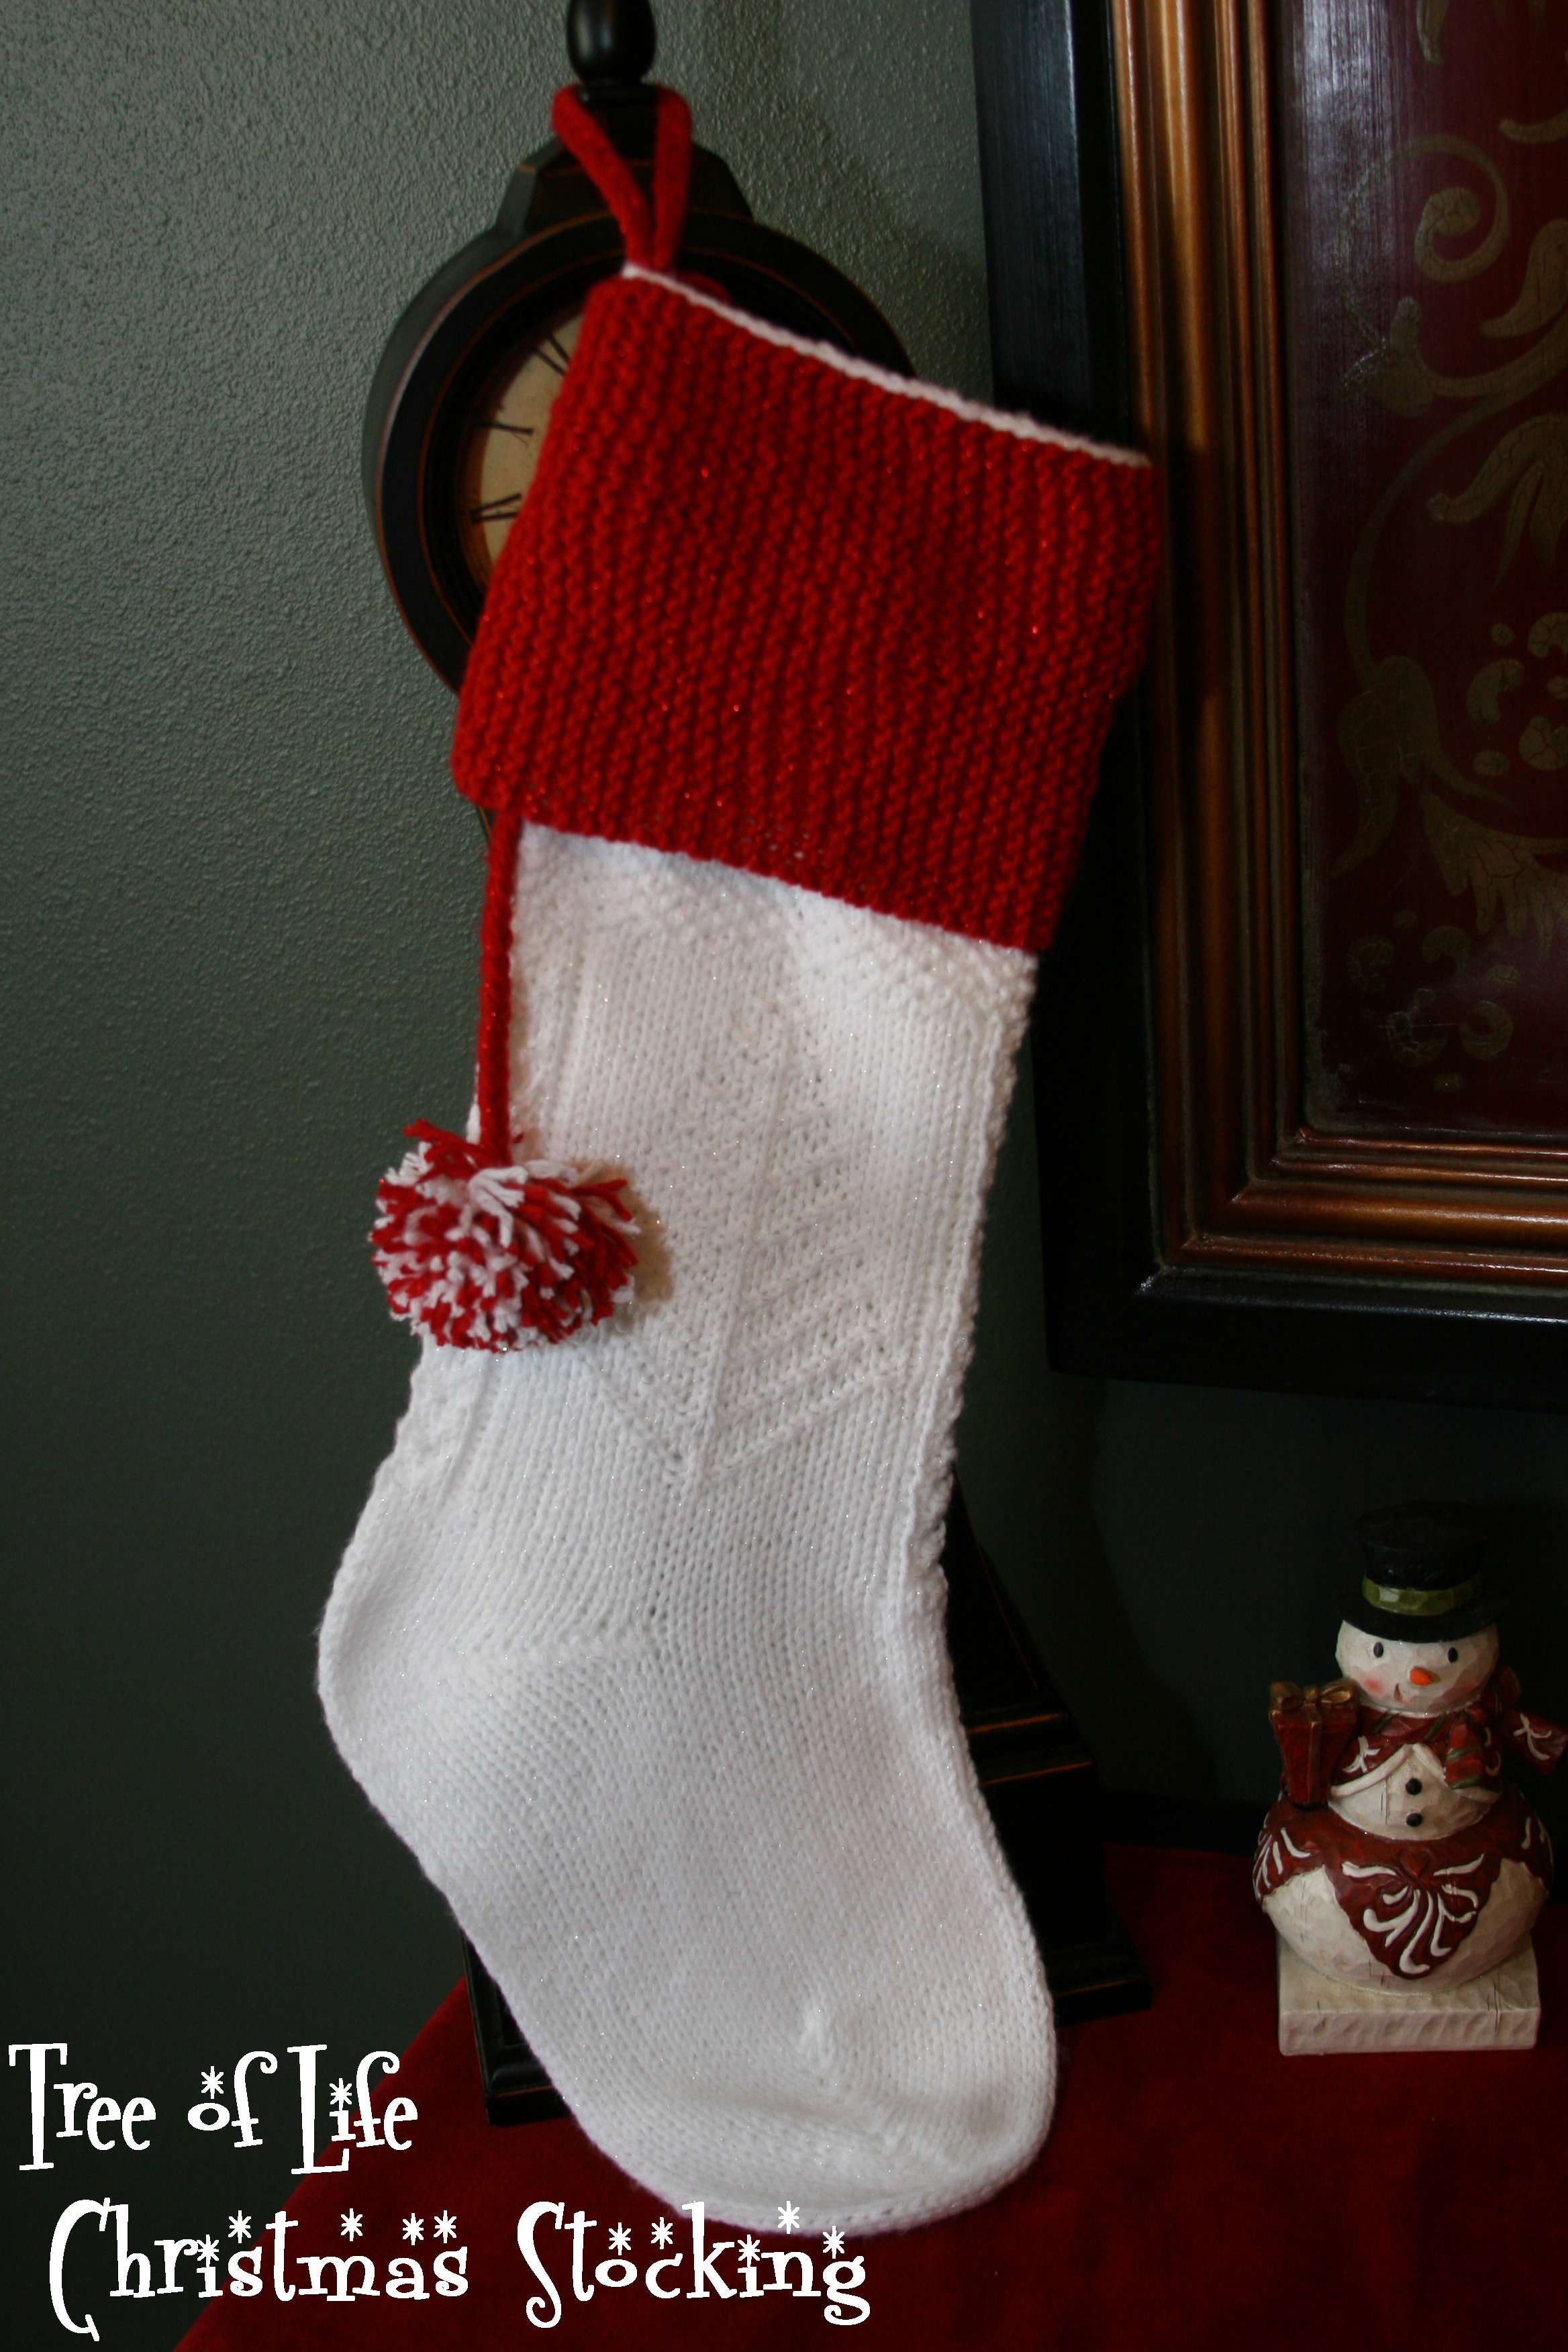 Knitting Patterns For Xmas Stockings : Happy Holidays!!! Christmas Stocking Pattern   Knitting Board Blog